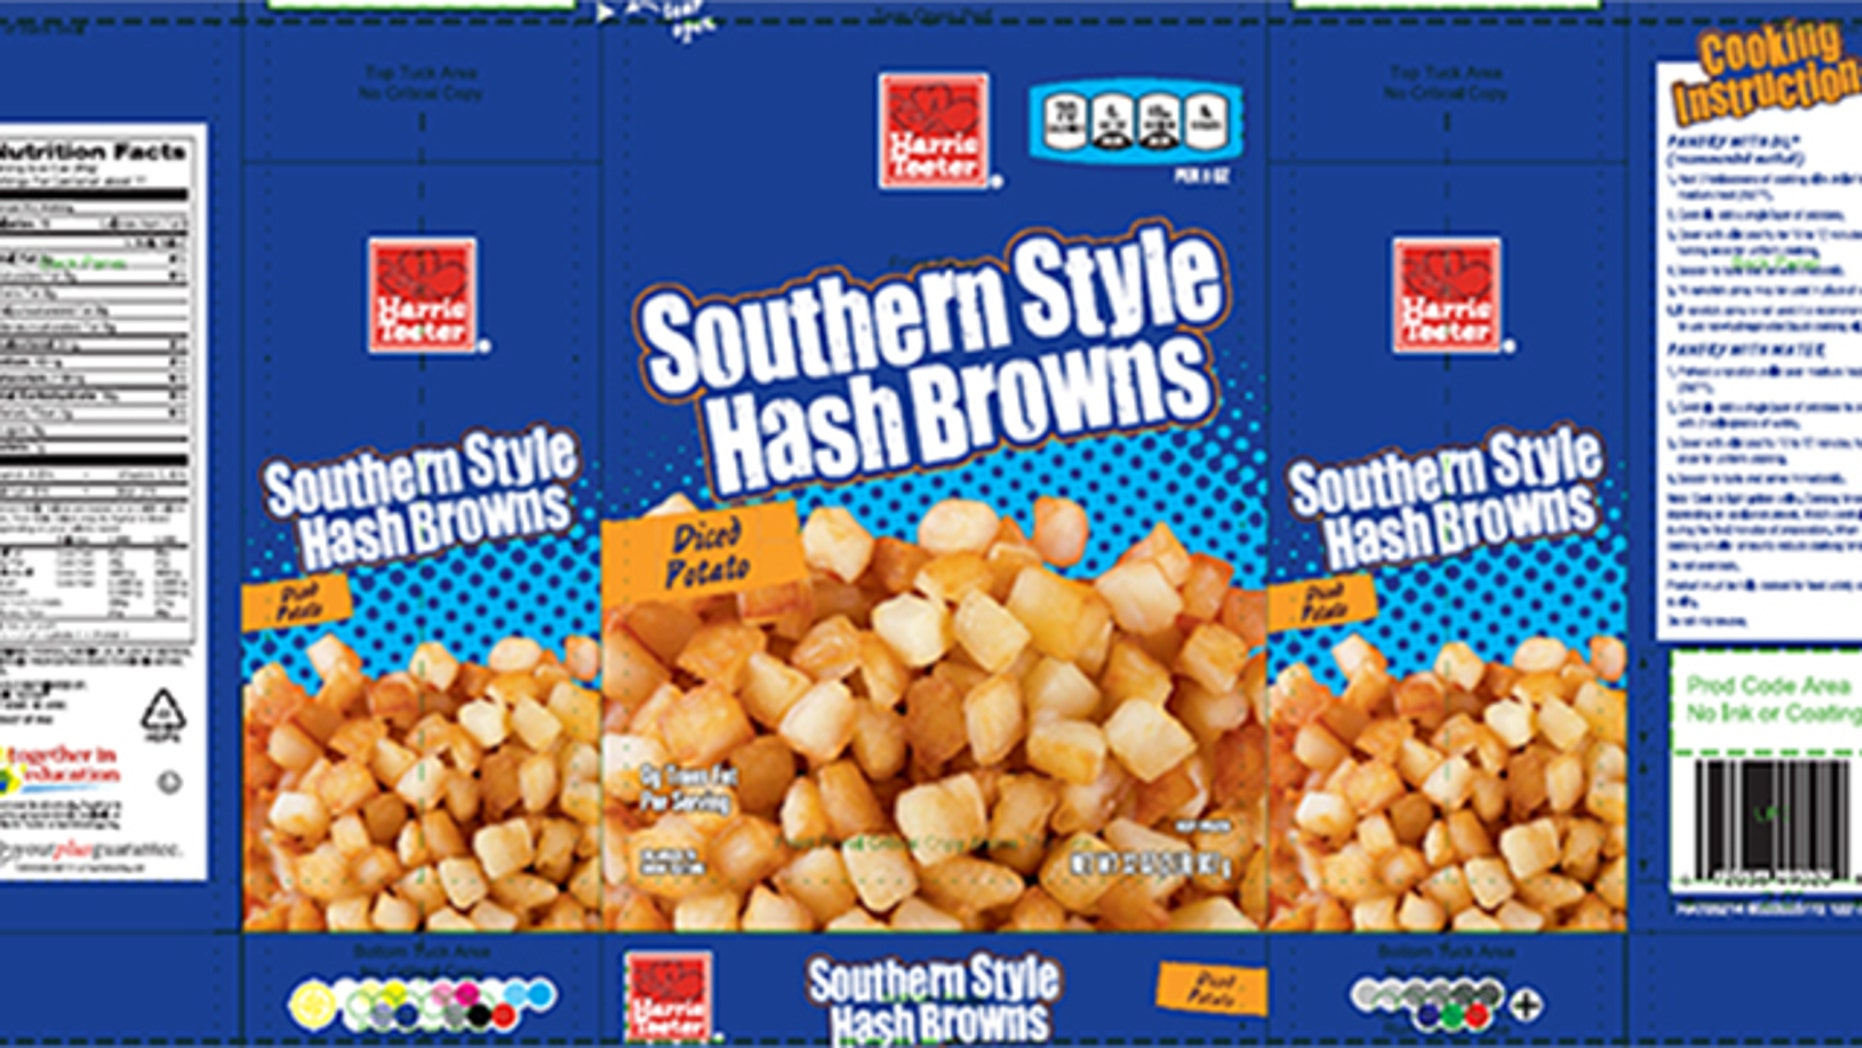 One of the recalled frozen hash brown packages